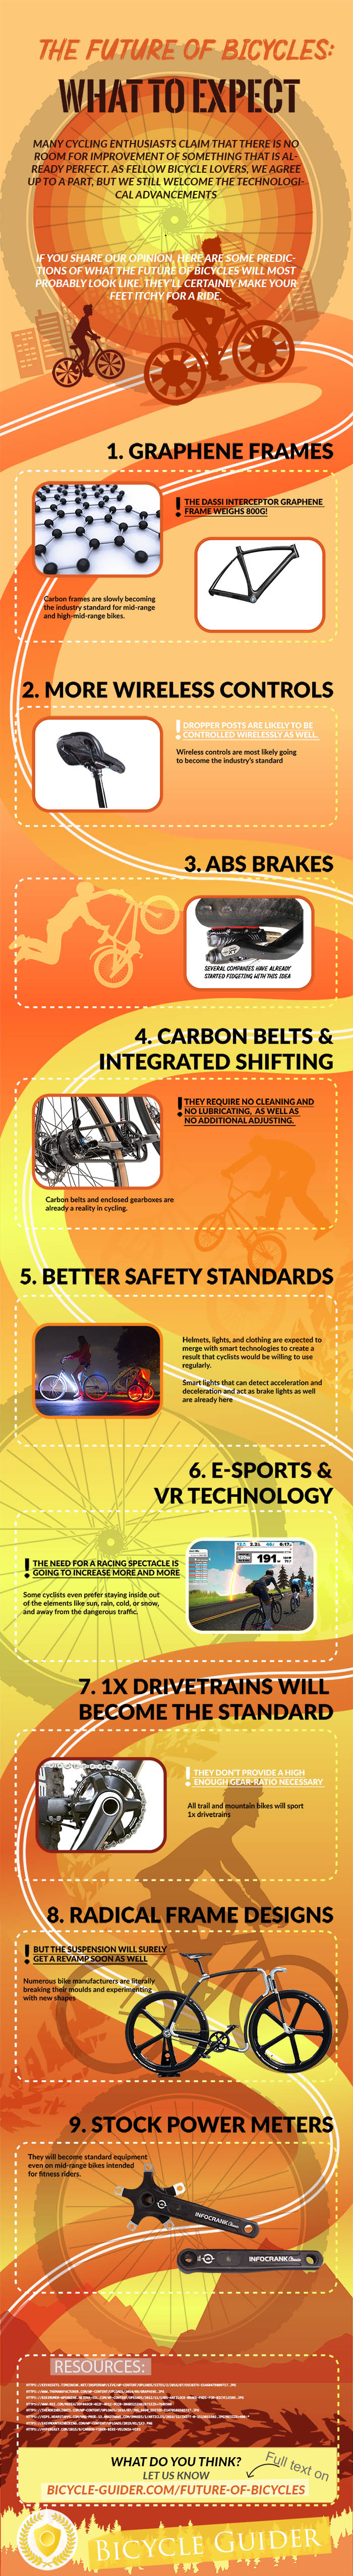 Future of Bicycles (Infographic)